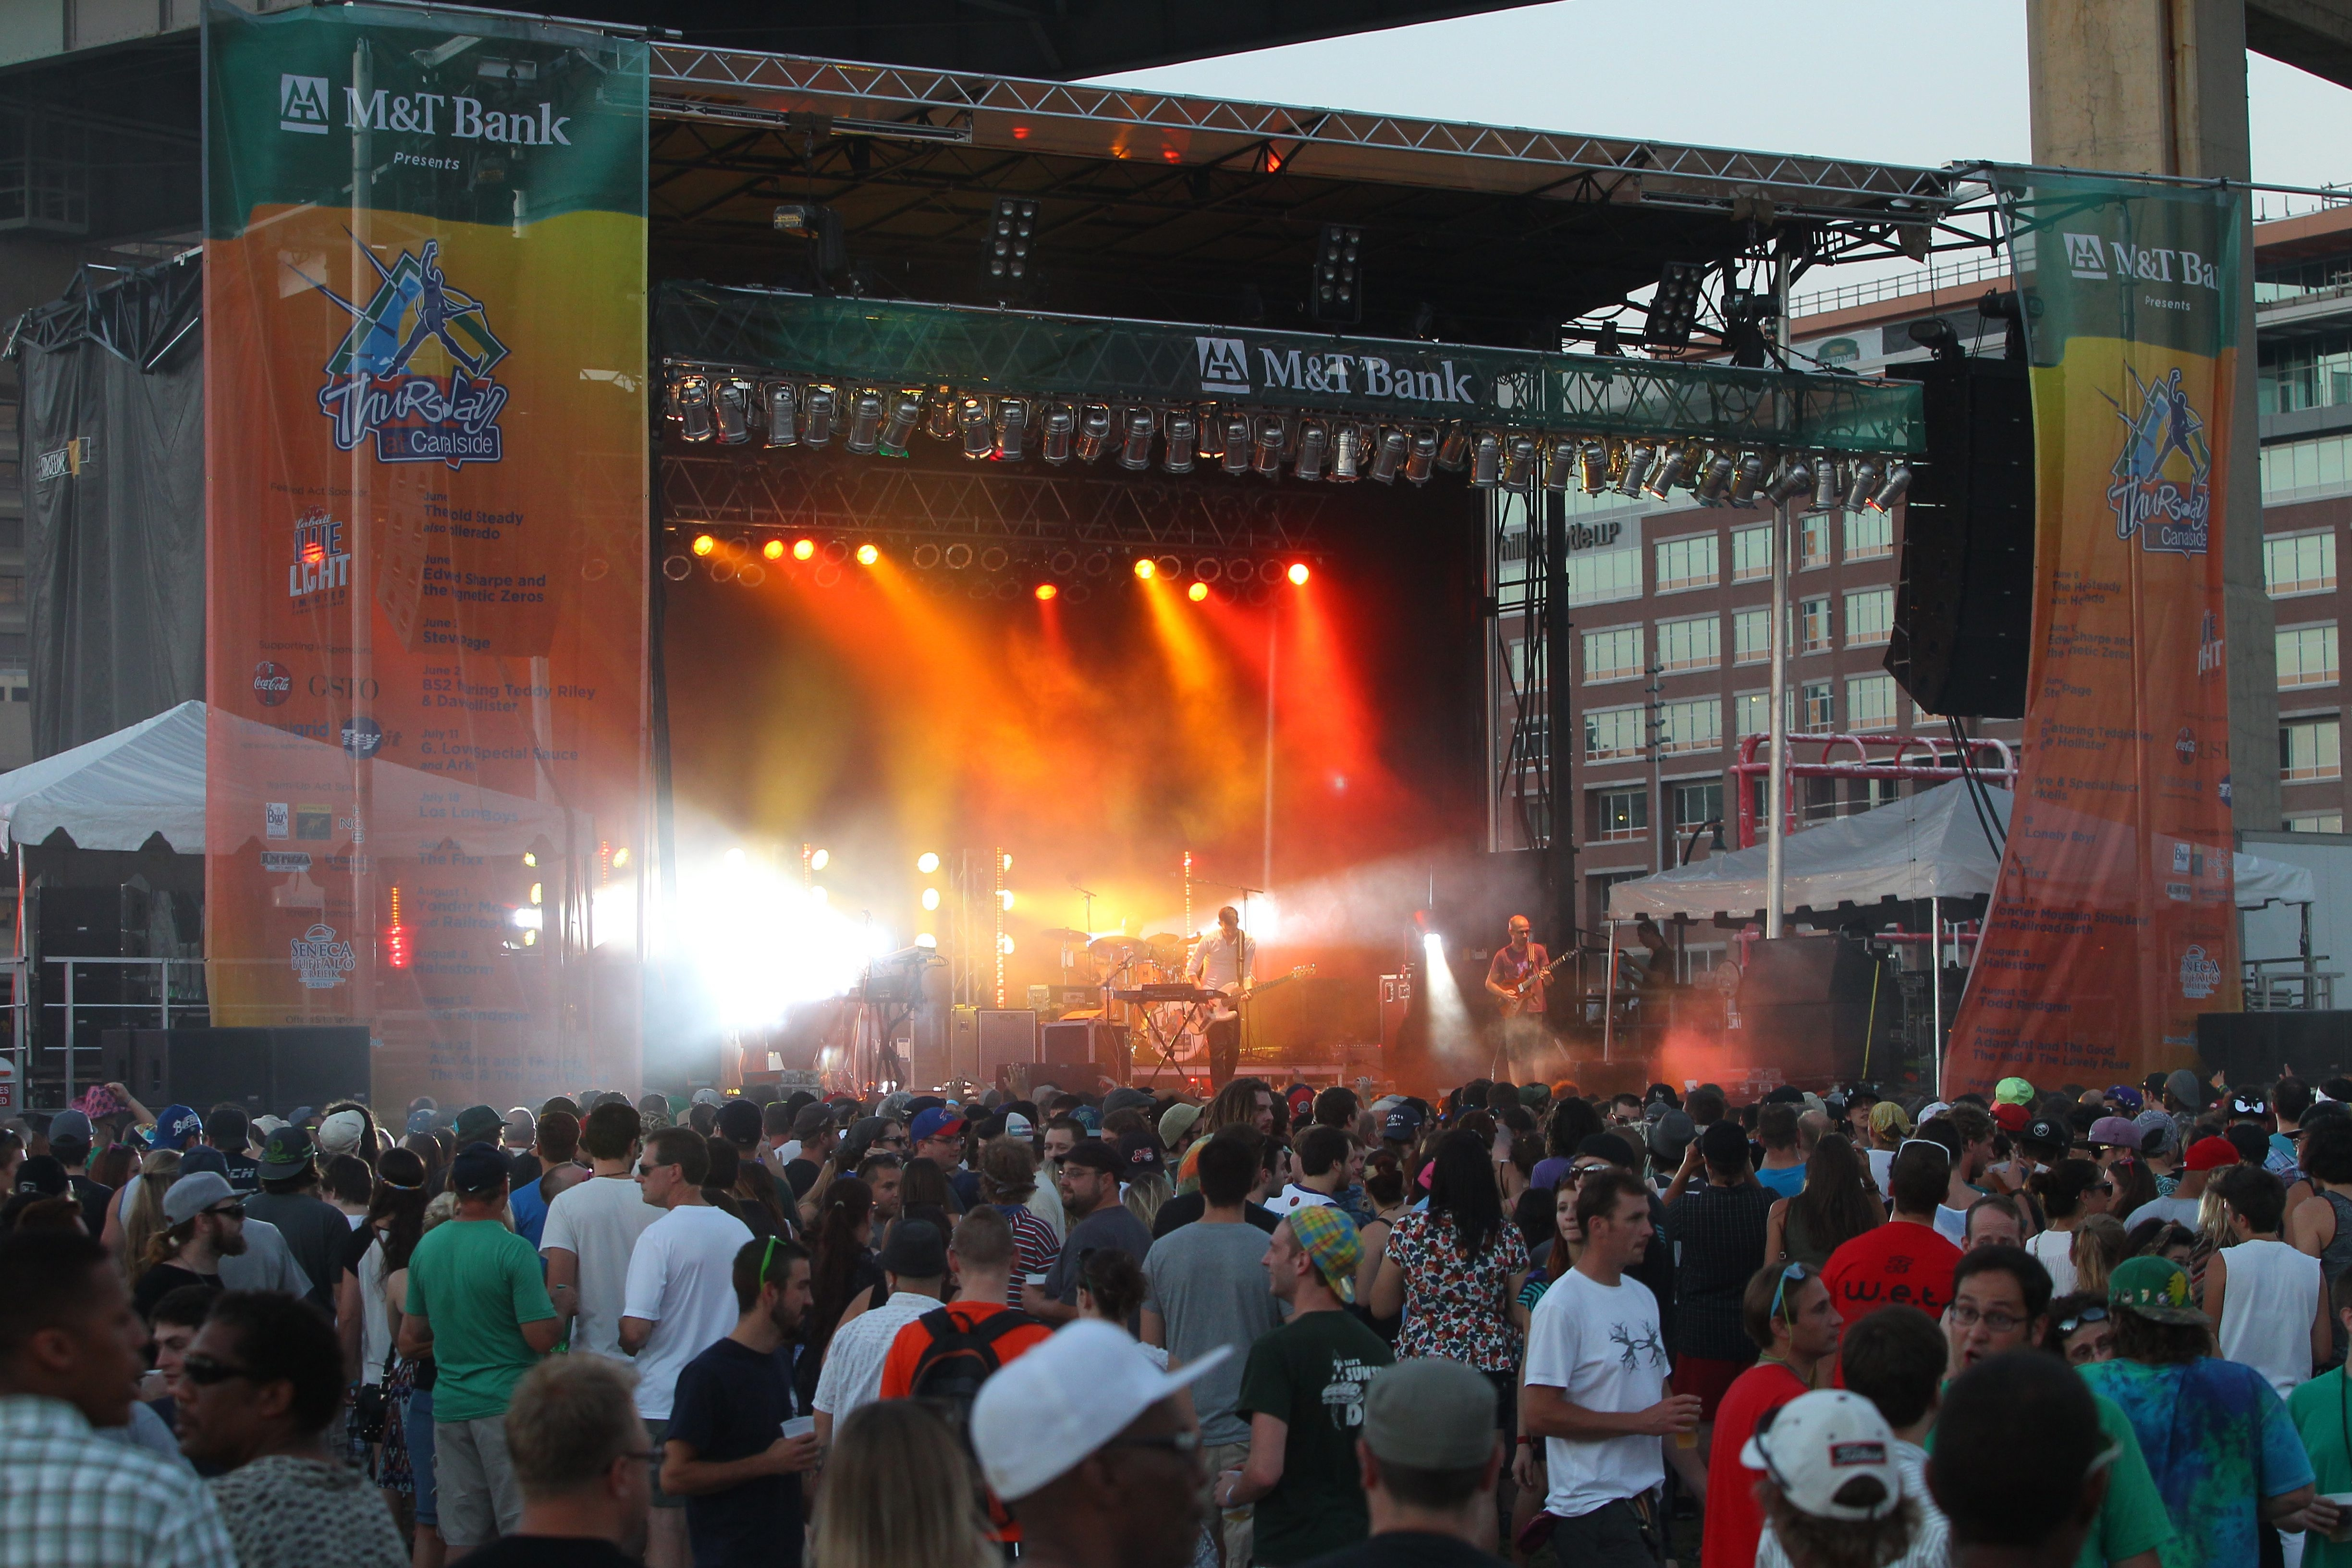 The free Canalside concerts, such as this August 2013 performance by Lotus, will continue this summer under the management of Global Spectrum, the new entity selected Monday to operate and program the waterfront venue.